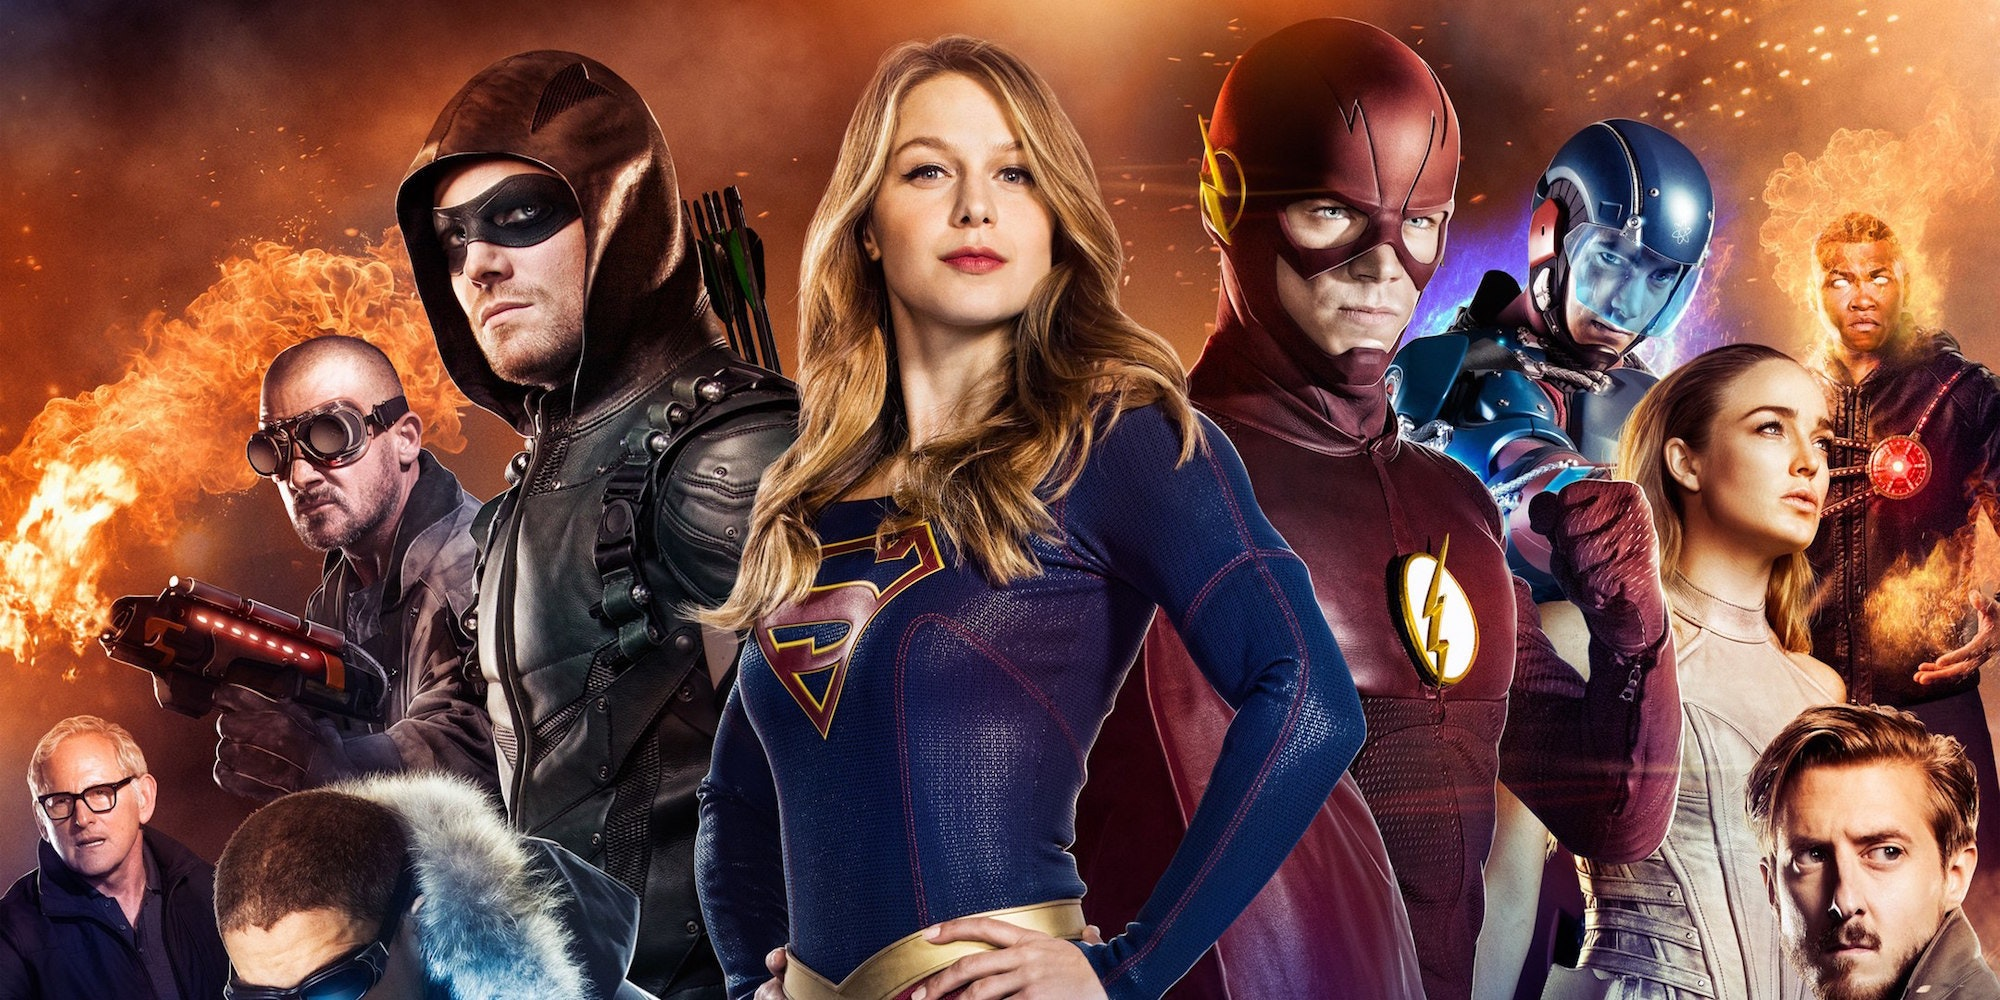 The new CW crossover event trailer is absolutely terrific.